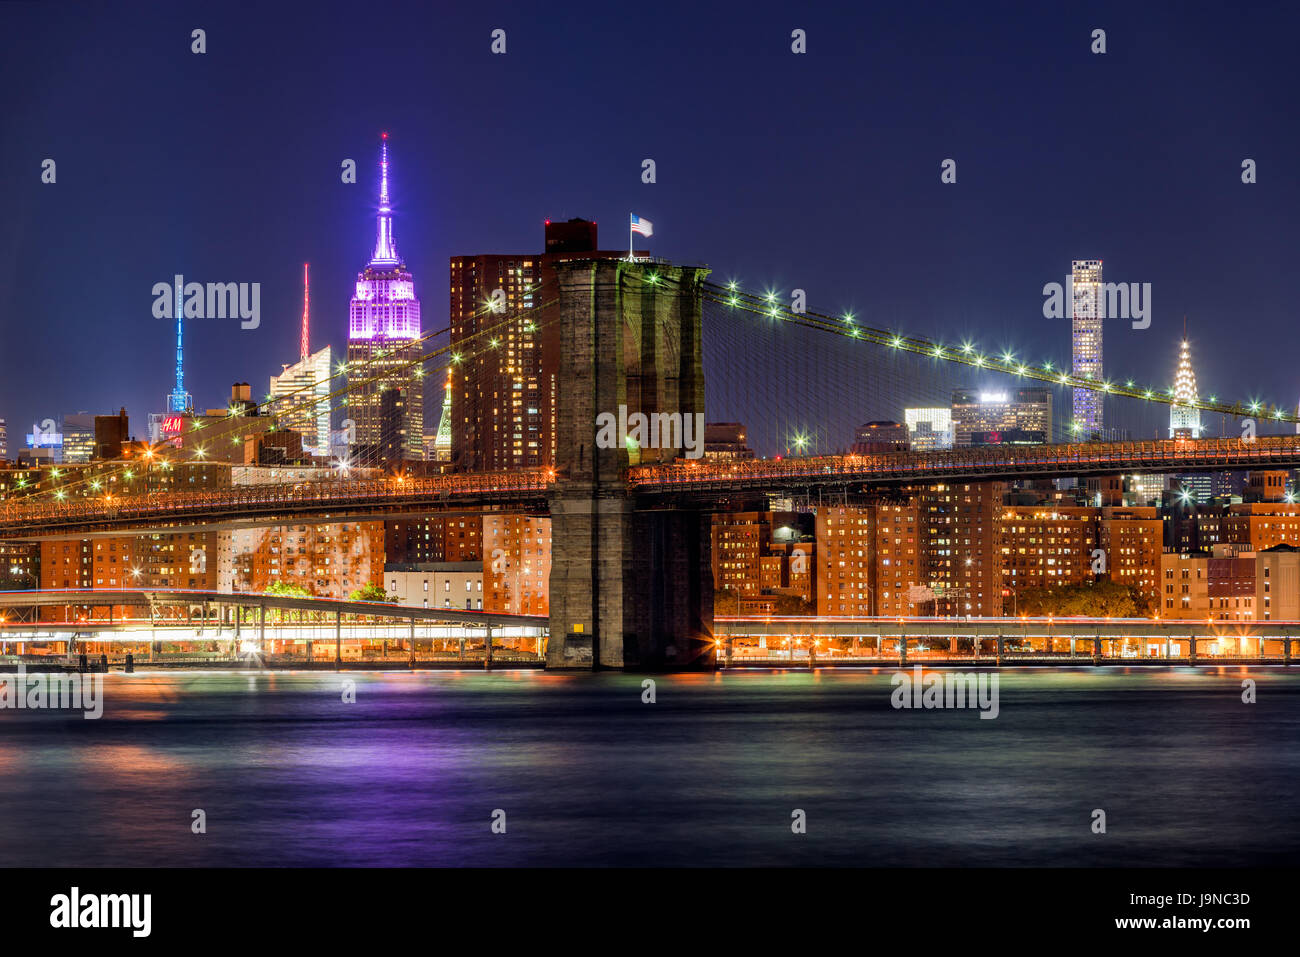 Vista notturna del Ponte di Brooklyn e grattacieli di Manhattan con l' Empire State Building illuminato in rosa. Foto Stock